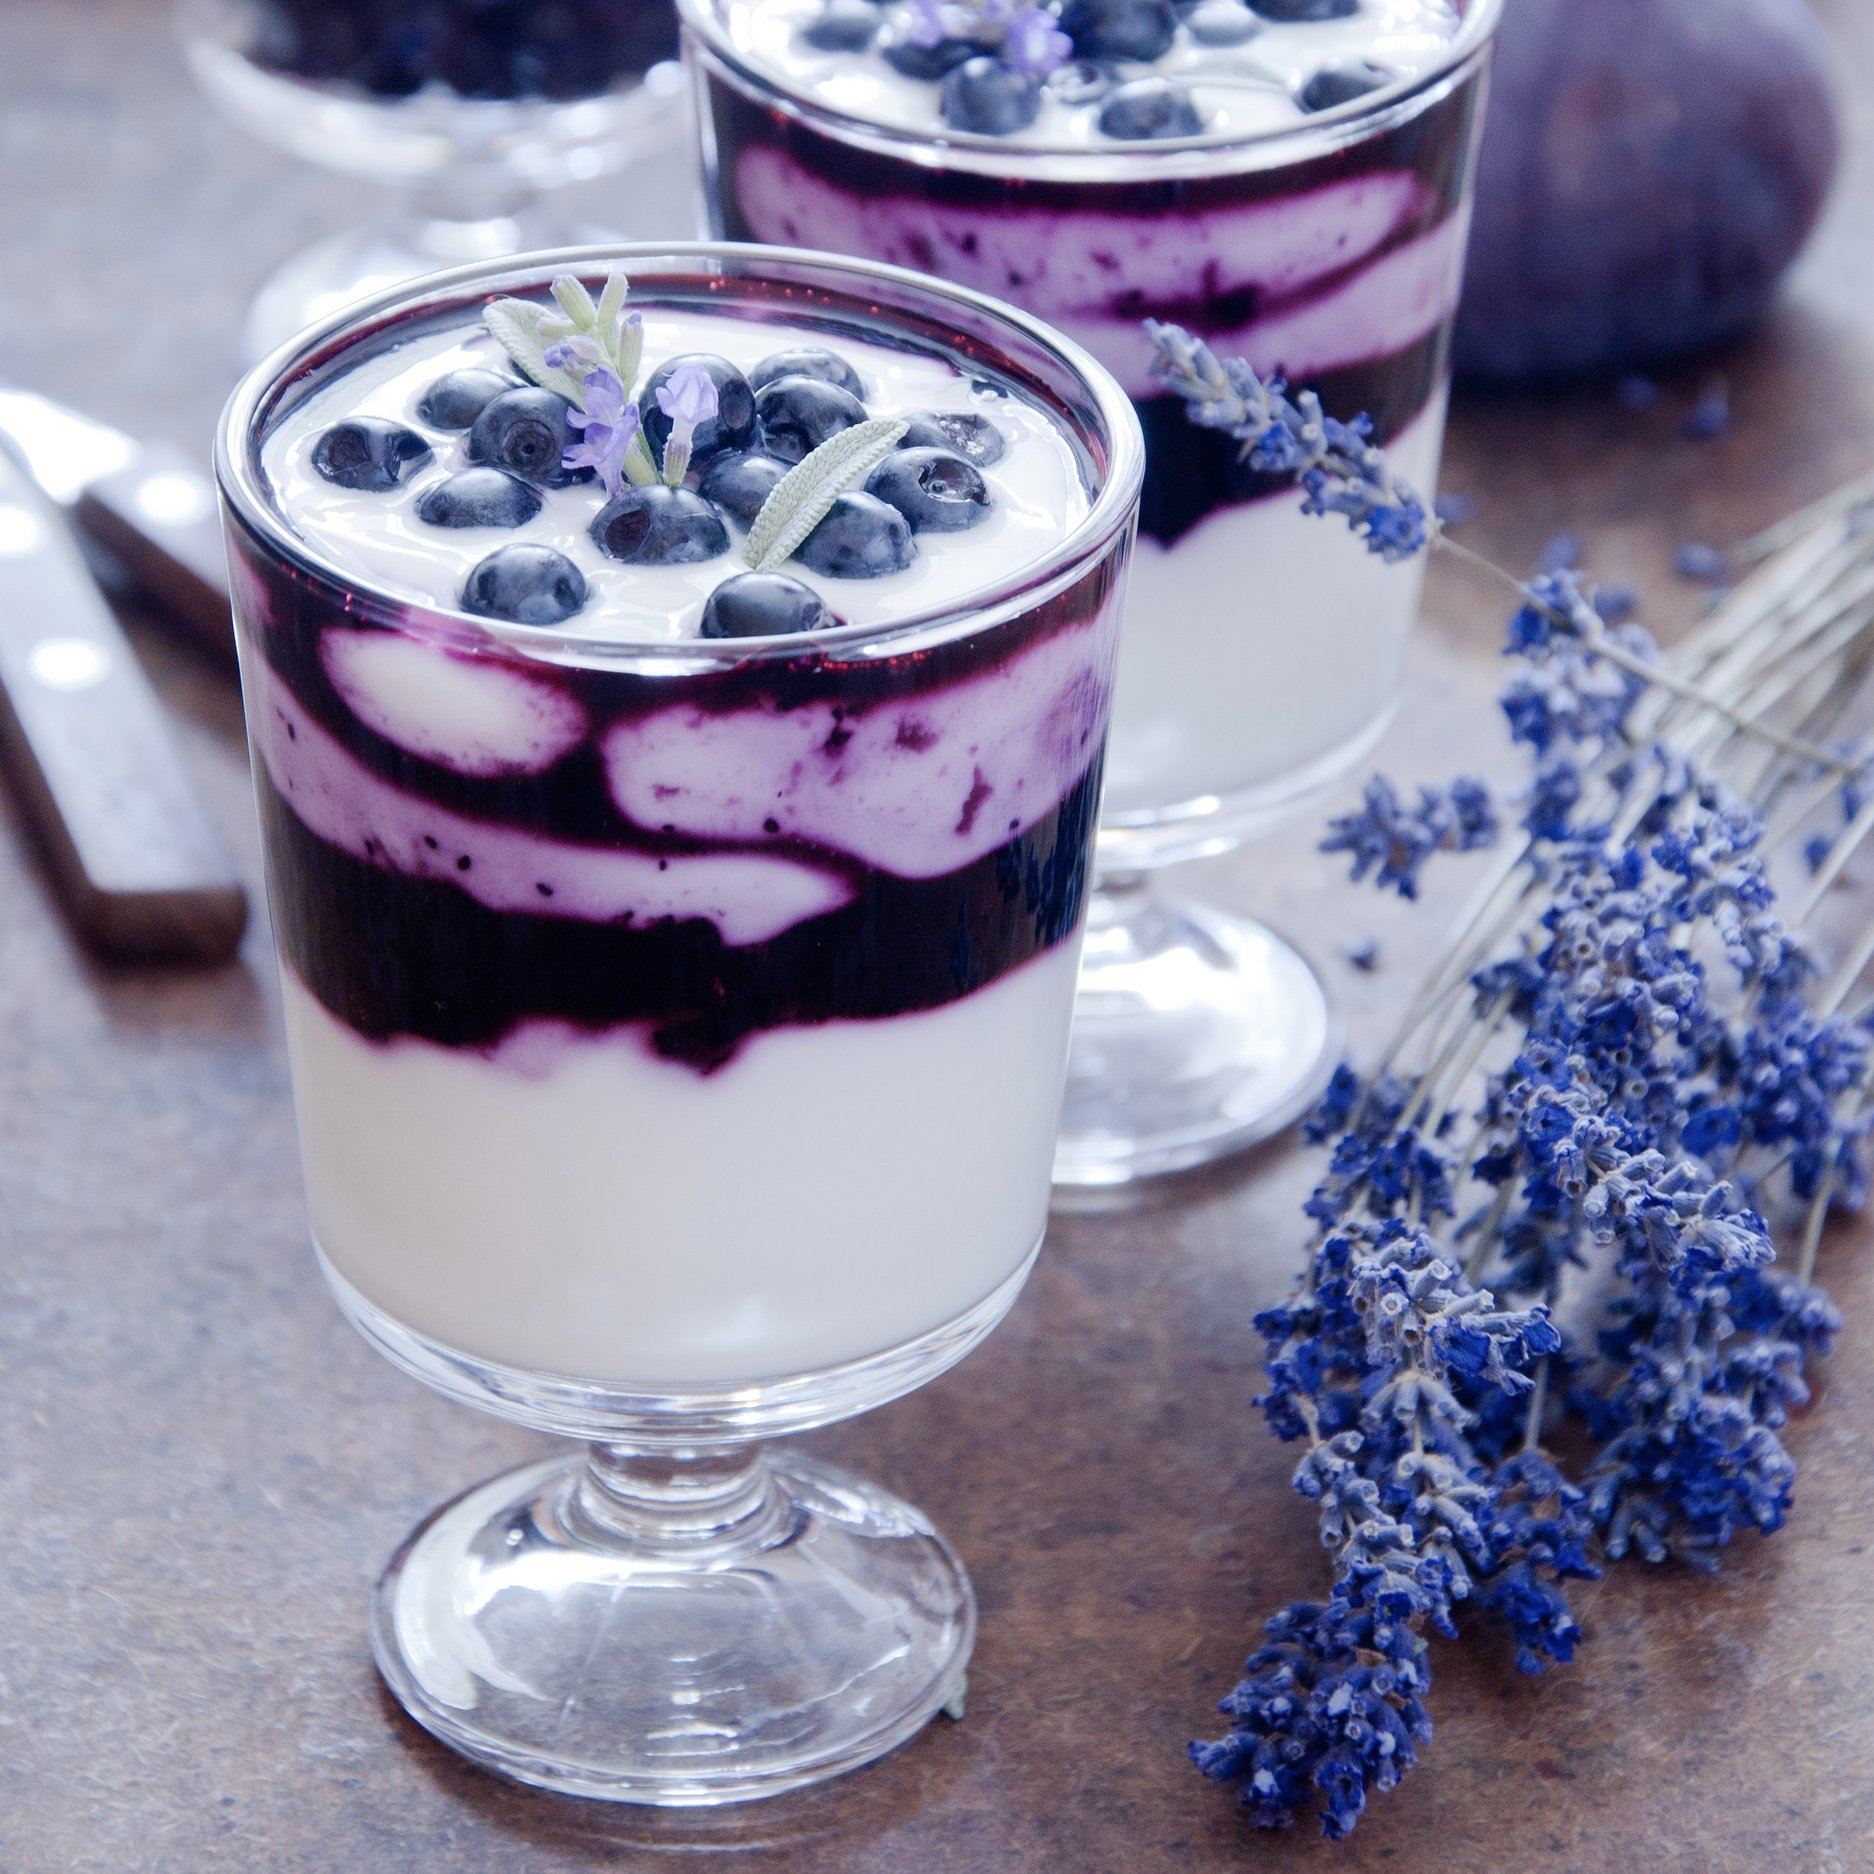 Blueberry Lavender Parfait